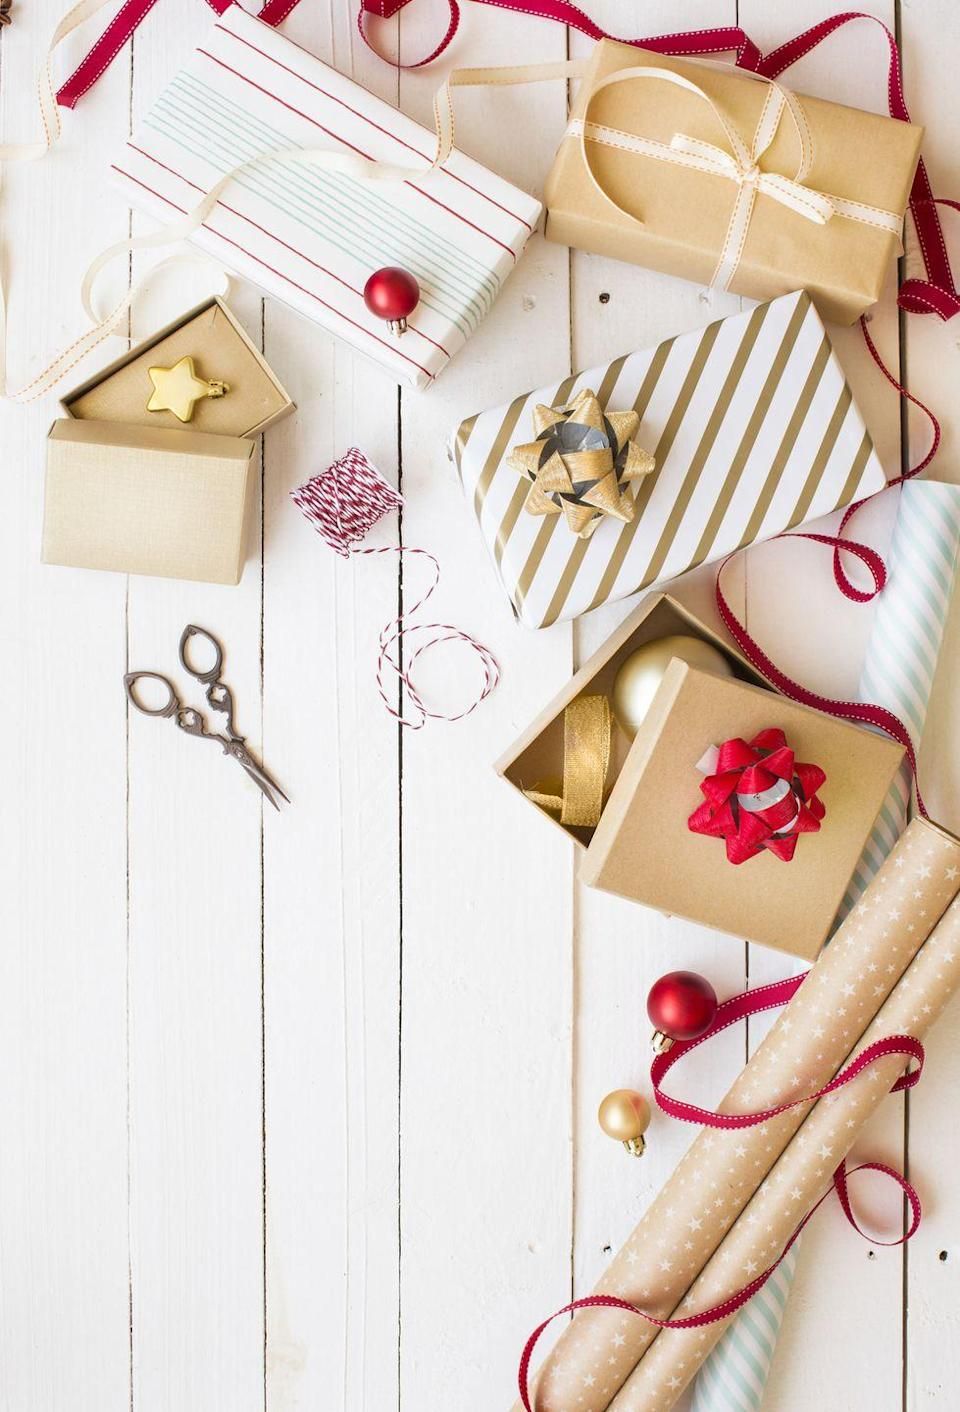 """<p>Don't wait until the last minute to <a href=""""https://www.oprahmag.com/life/g34015639/gift-wrapping-ideas/"""" rel=""""nofollow noopener"""" target=""""_blank"""" data-ylk=""""slk:wrap all those gifts"""" class=""""link rapid-noclick-resp"""">wrap all those gifts</a> under the tree. If you tackle the task early, it's actually a pretty fun Christmas activity—especially if you turn on a Hallmark movie and add a glass of wine to the mix. </p><p><a class=""""link rapid-noclick-resp"""" href=""""https://www.amazon.com/Hallmark-Black-Christmas-Wrapping-Reverse/dp/B088SQDN6F?tag=syn-yahoo-20&ascsubtag=%5Bartid%7C10072.g.34454588%5Bsrc%7Cyahoo-us"""" rel=""""nofollow noopener"""" target=""""_blank"""" data-ylk=""""slk:SHOP WRAPPING PAPER"""">SHOP WRAPPING PAPER</a></p>"""